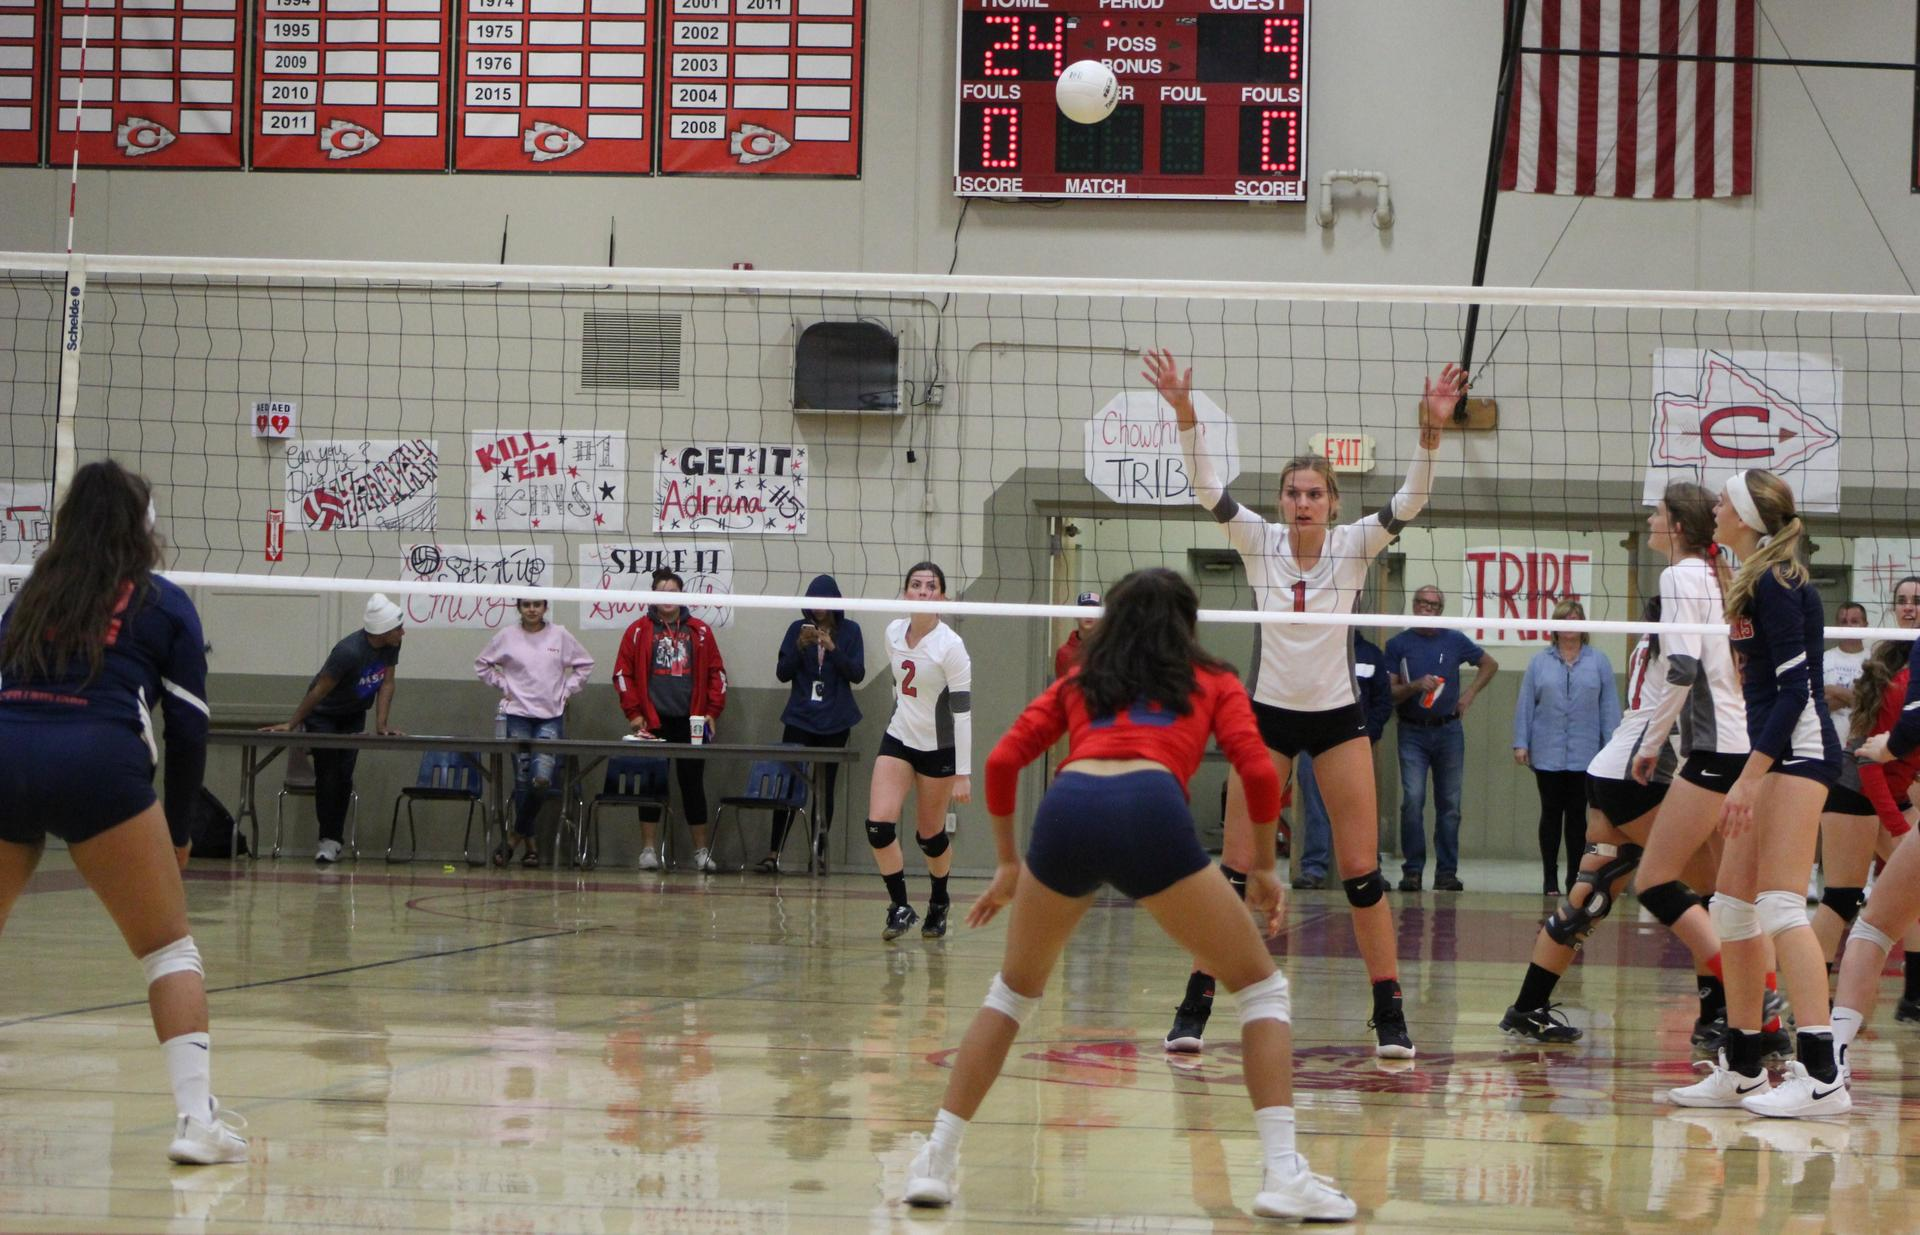 Girls playing volleyball against Strathmore